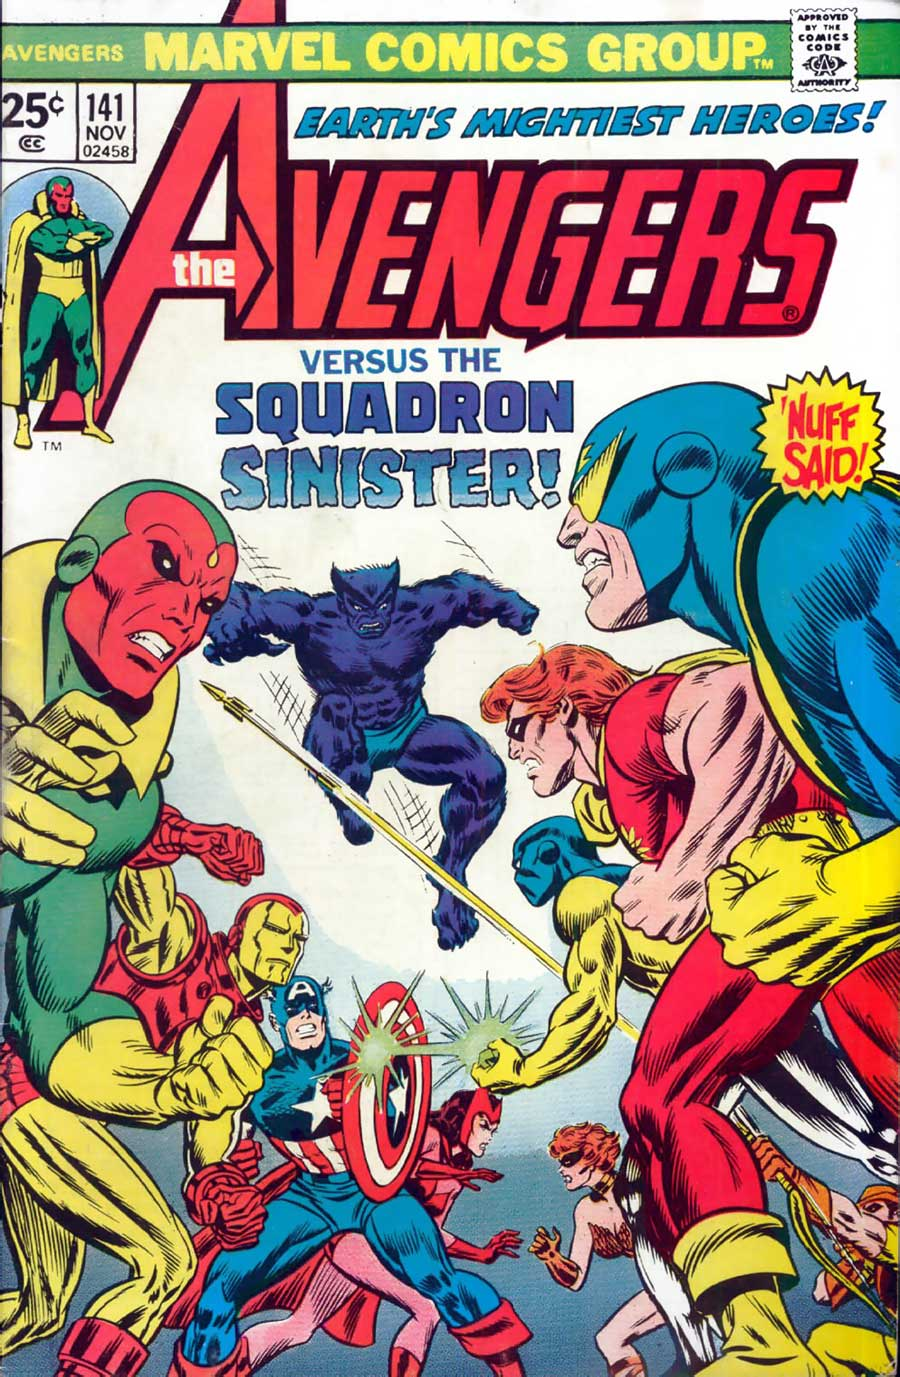 Avengers #141 with the Squadron Supreme